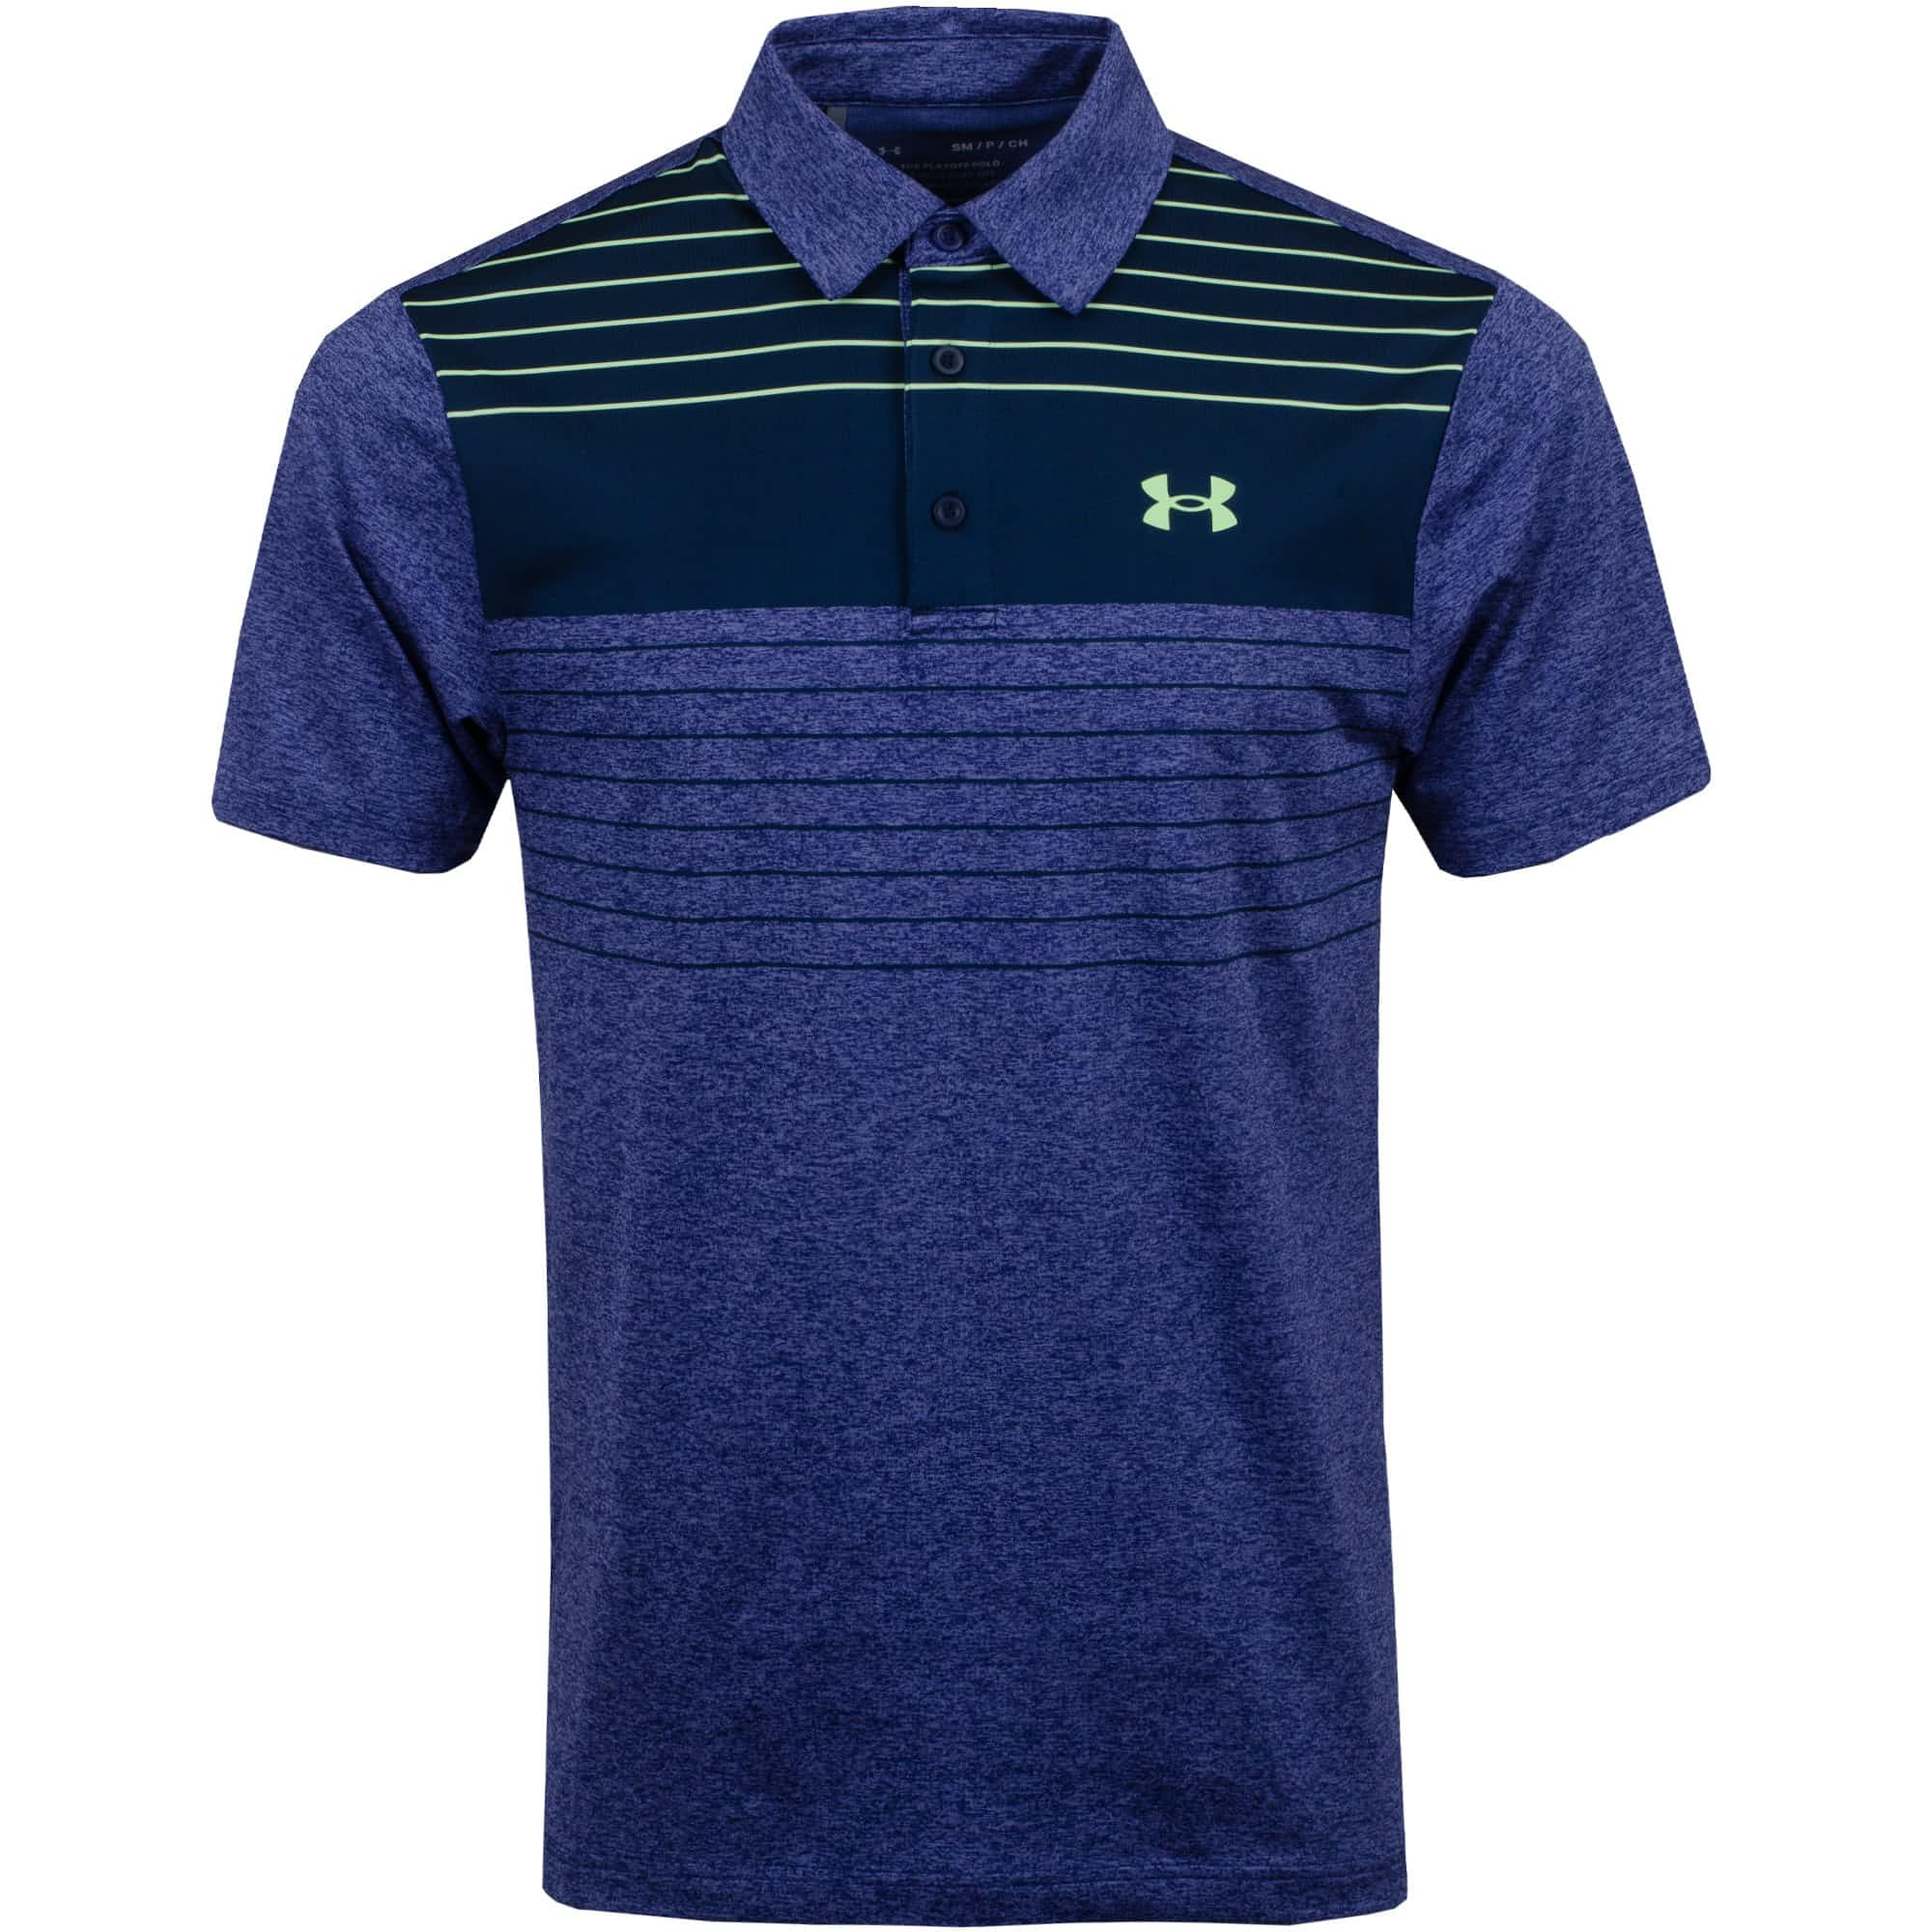 Under_Armour_Mens_Playoff_polo_Navy